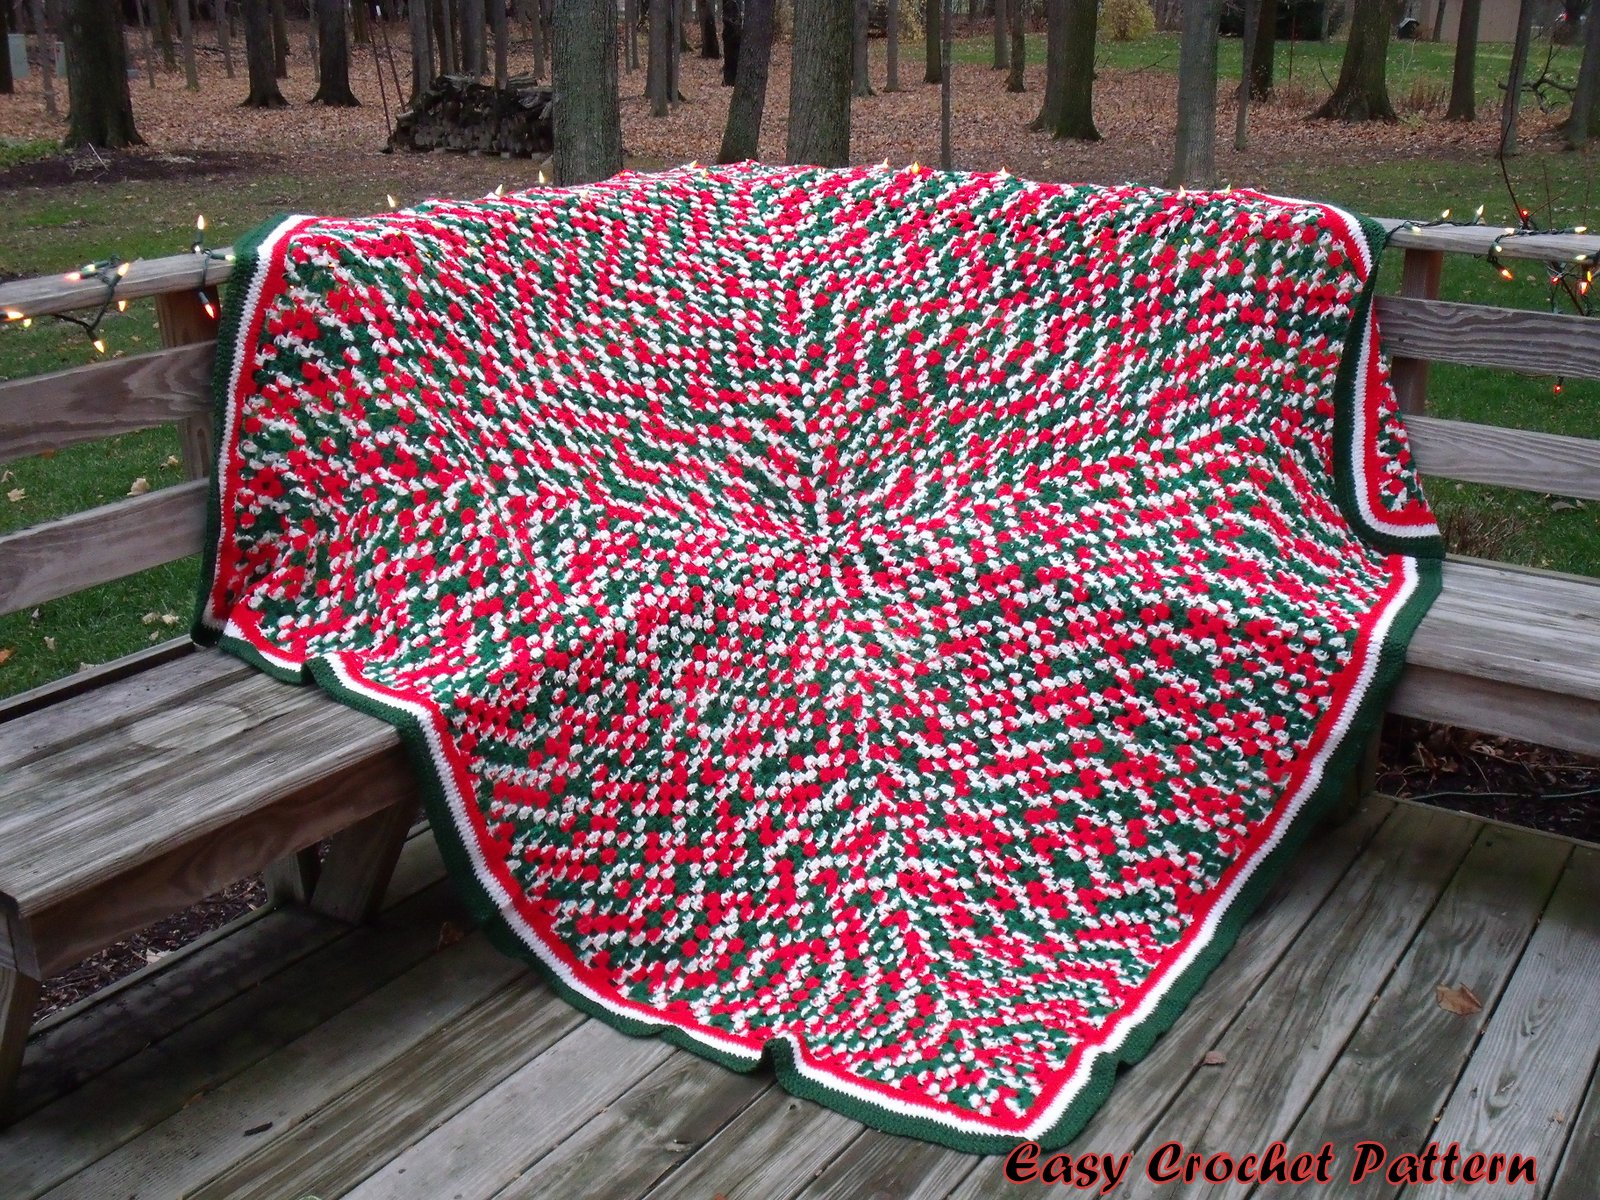 Crochet Patterns For Afghans : Easy Crochet Pattern: Crocheted Christmas Afghans and Tree Skirt